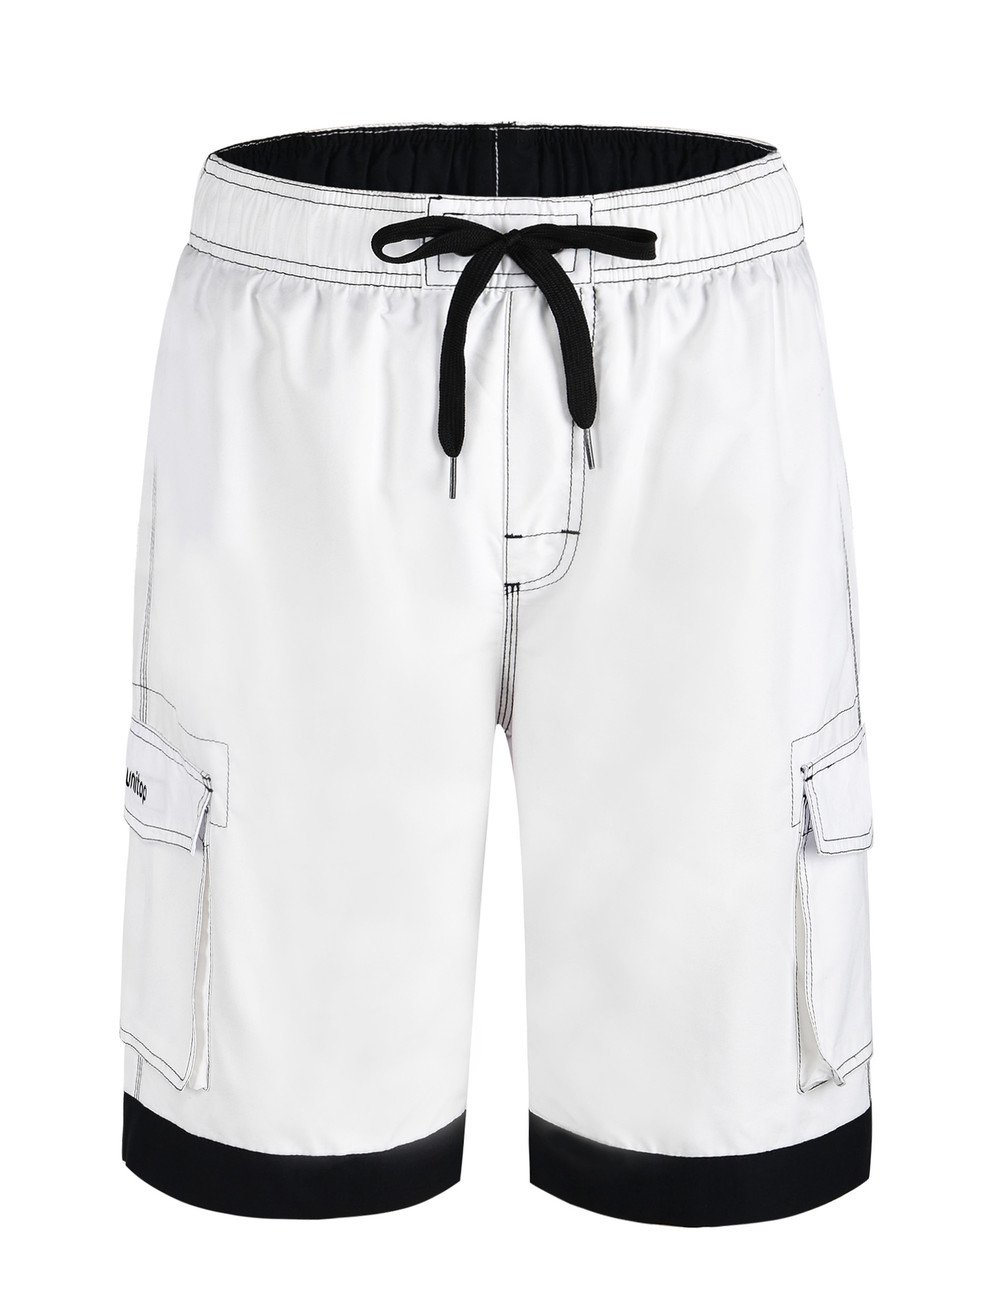 Unitop Men's Summer Holidays Casual Quick Dry Beach Board Shorts White&Black 30